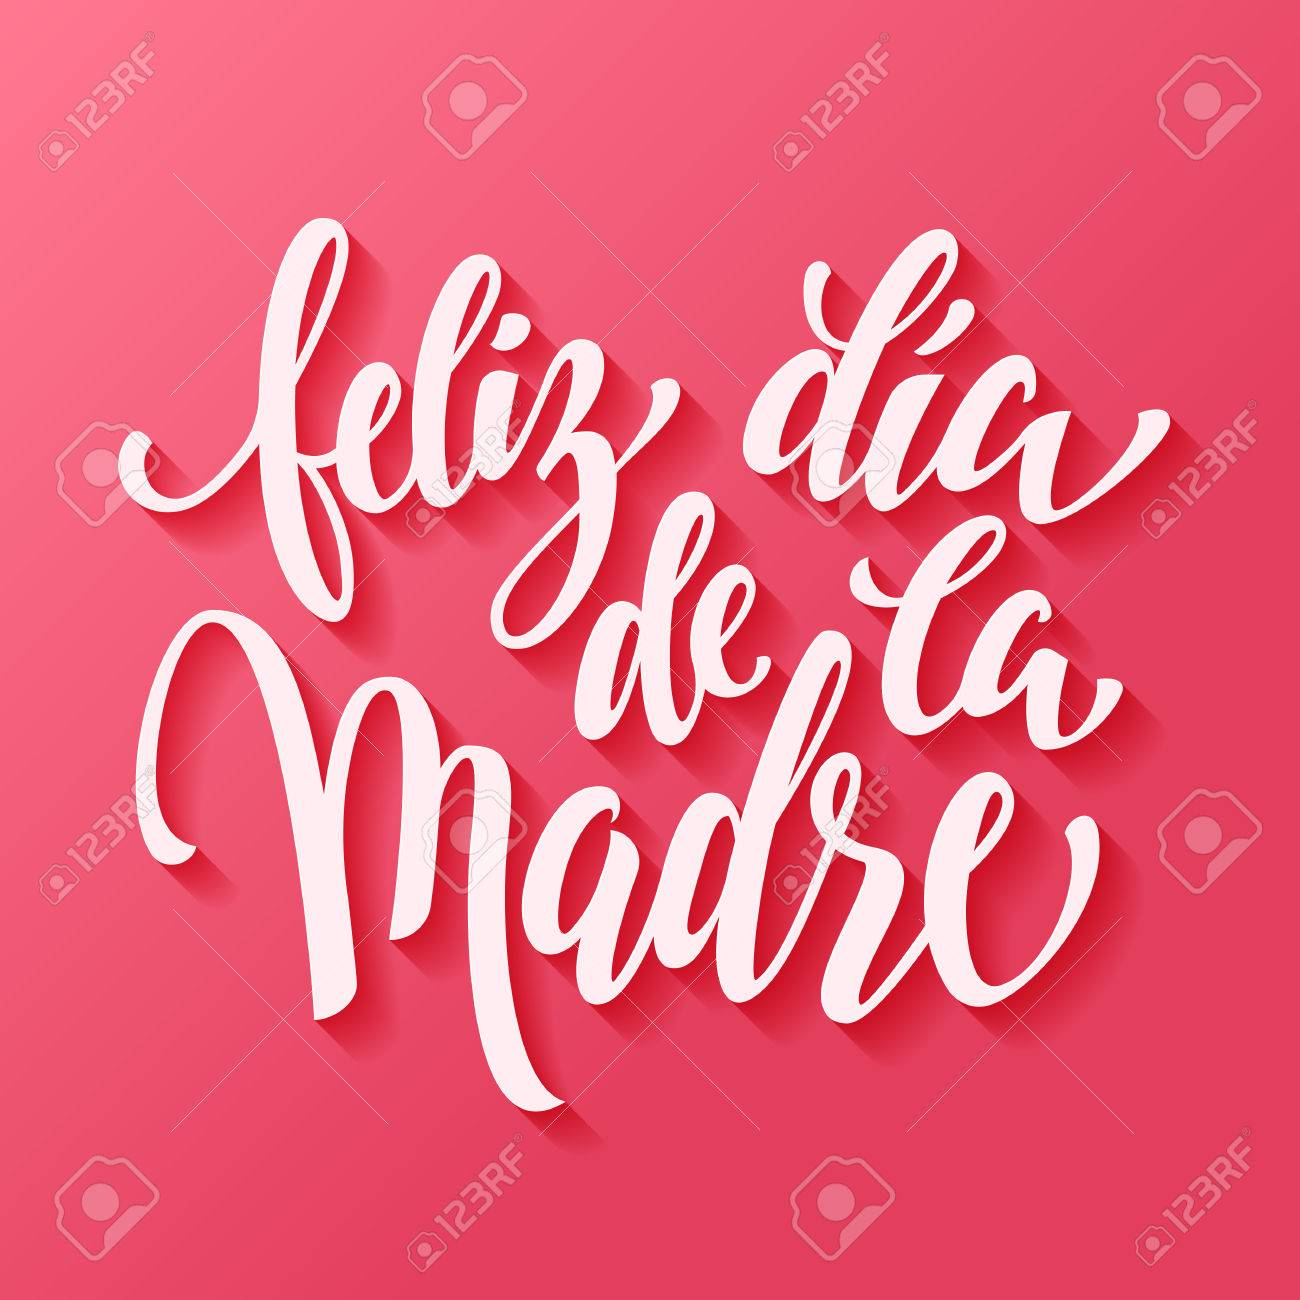 Feliz dia de la madre. Mothers Day vector greeting card. Hand drawn lettering title in Spanish. Pink red background. - 54612192